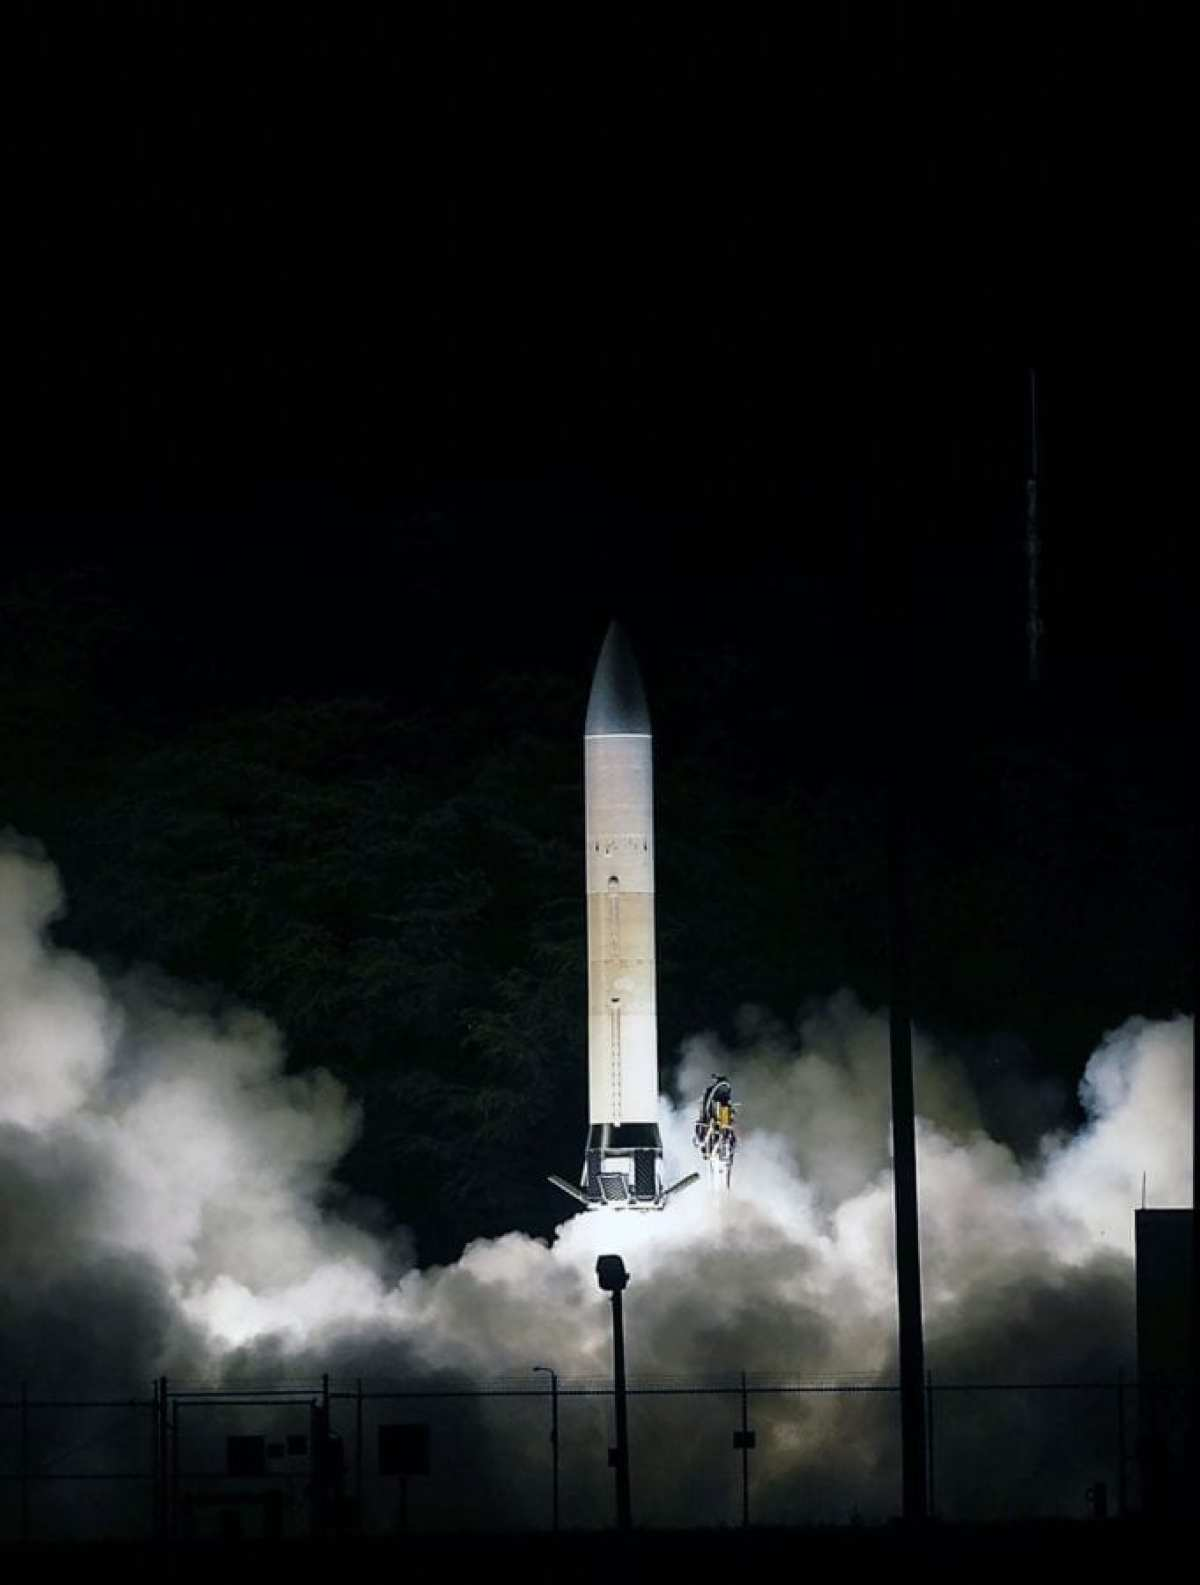 The U.S. Army Space and Missile Defense Command/Army Forces Strategic Command conducted the first flight of the Advanced Hypersonic Weapon (AHW) concept in November 2011. AHW is a boost-glide weapon that is launched to a high altitude, curves back to the Earth's surface and then glides or skips along the atmosphere, without power, for the remainder of its flight